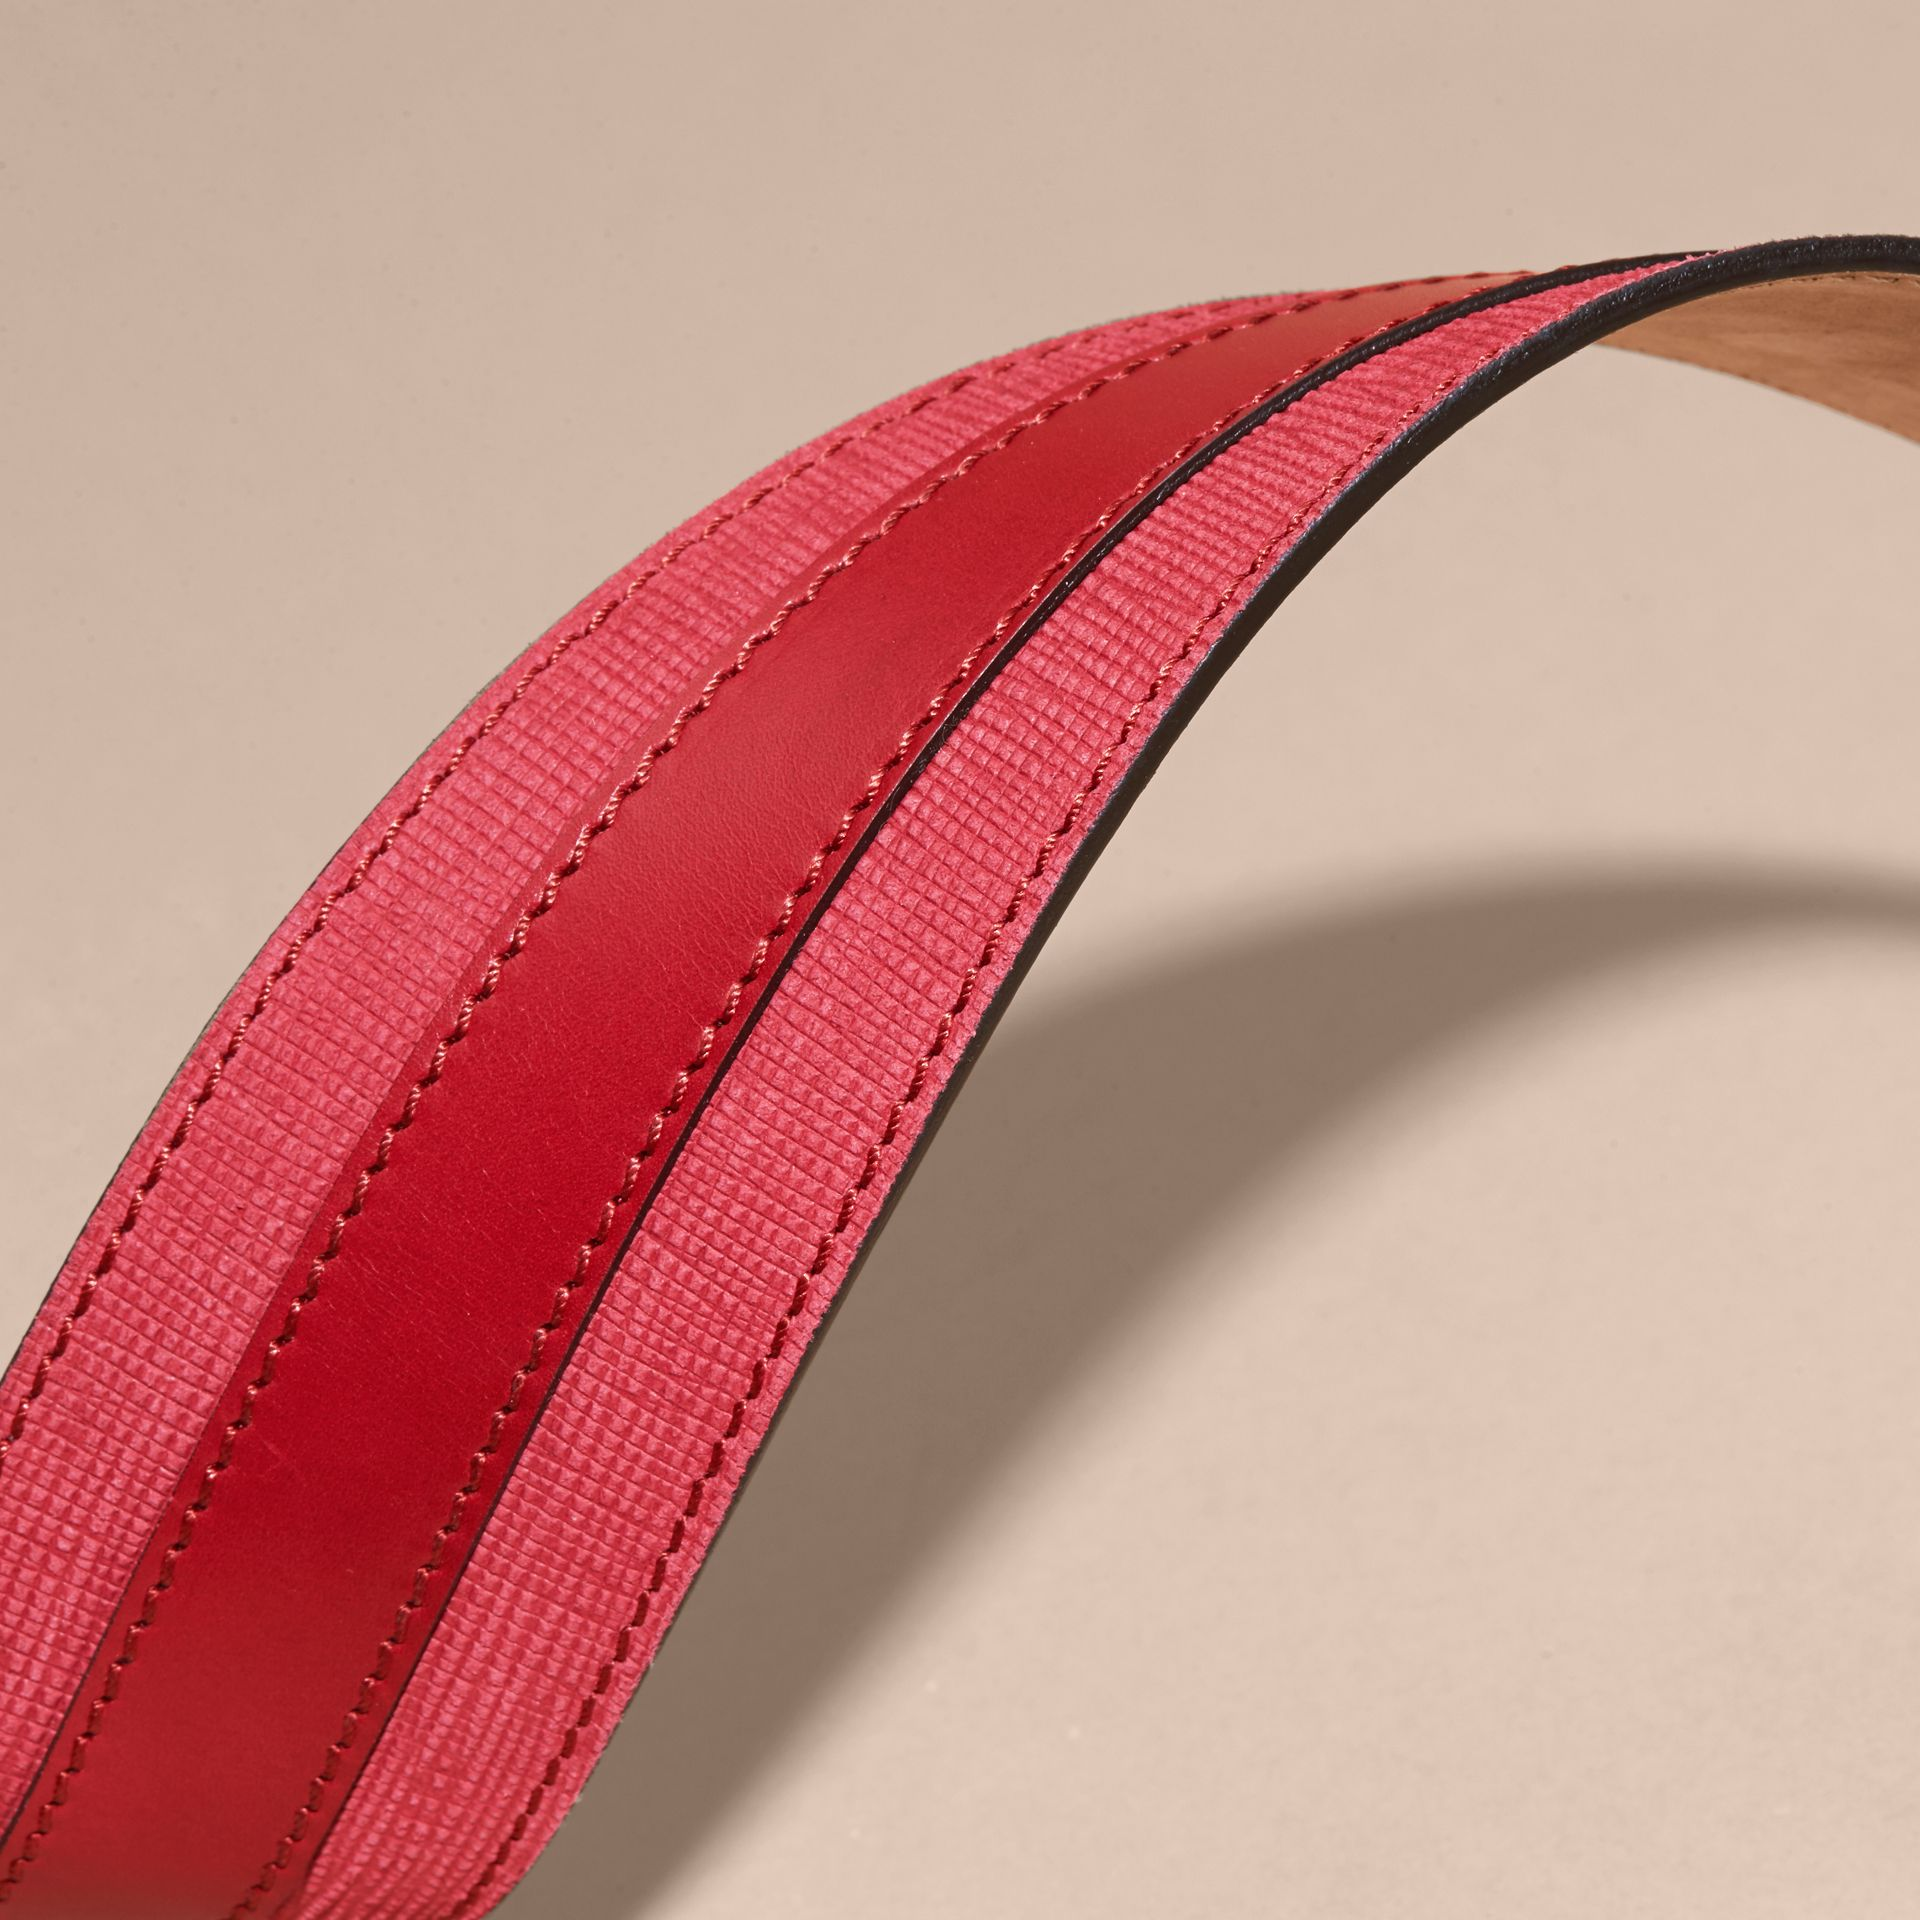 Plum pink Appliquéd Textured Suede and Leather Belt Plum Pink - gallery image 2